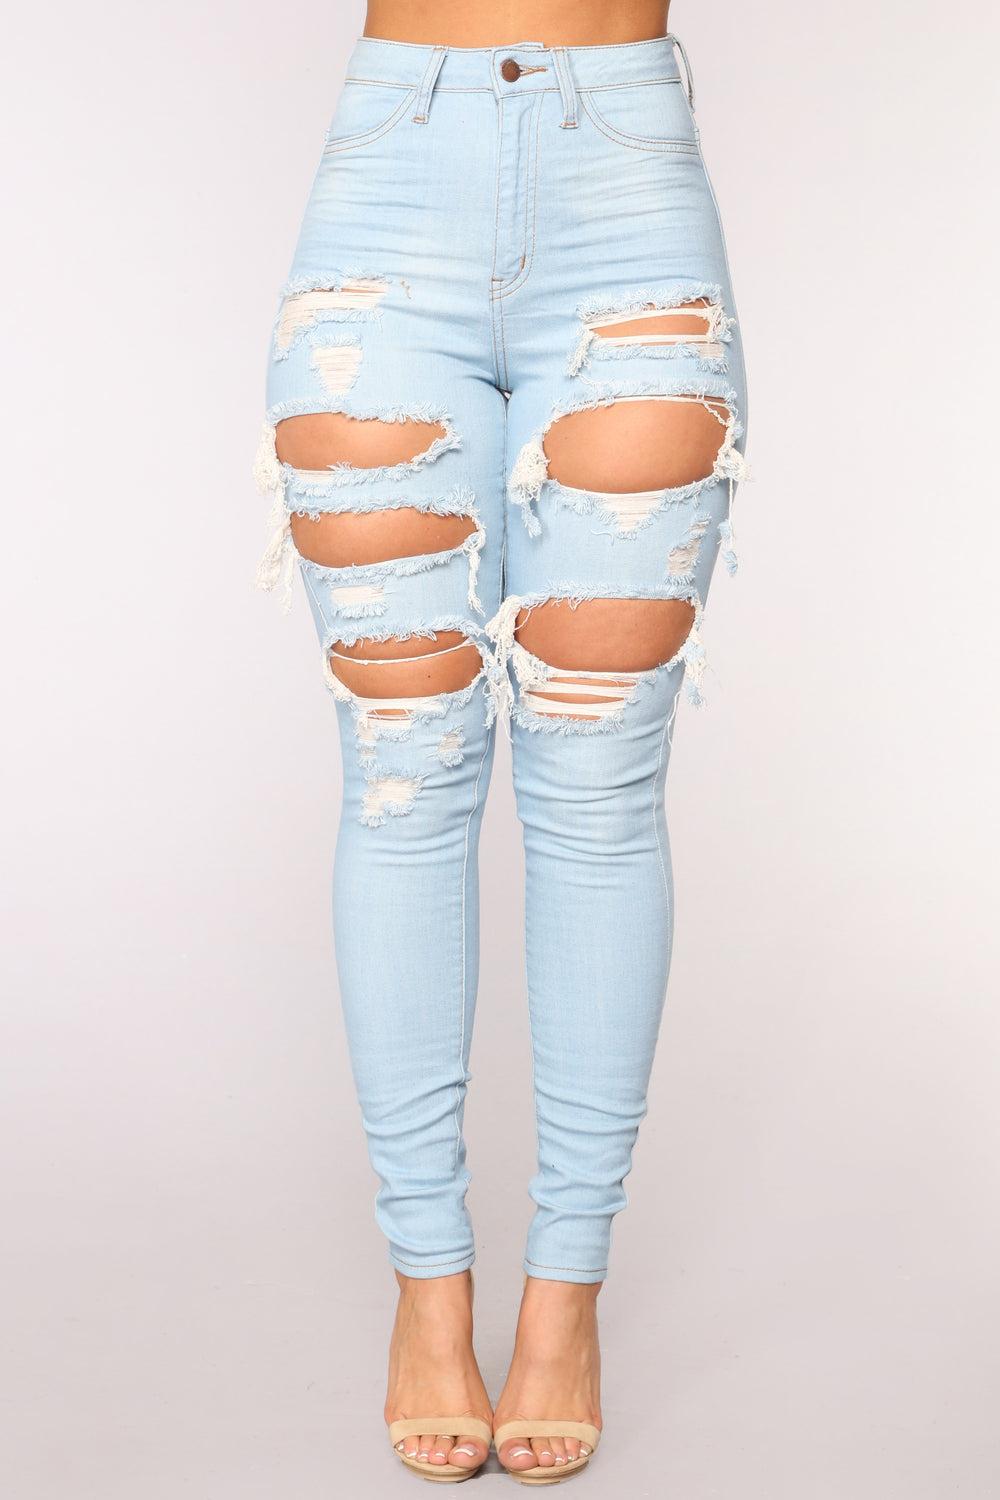 Live Let Live Skinny Jeans - Light Blue Wash